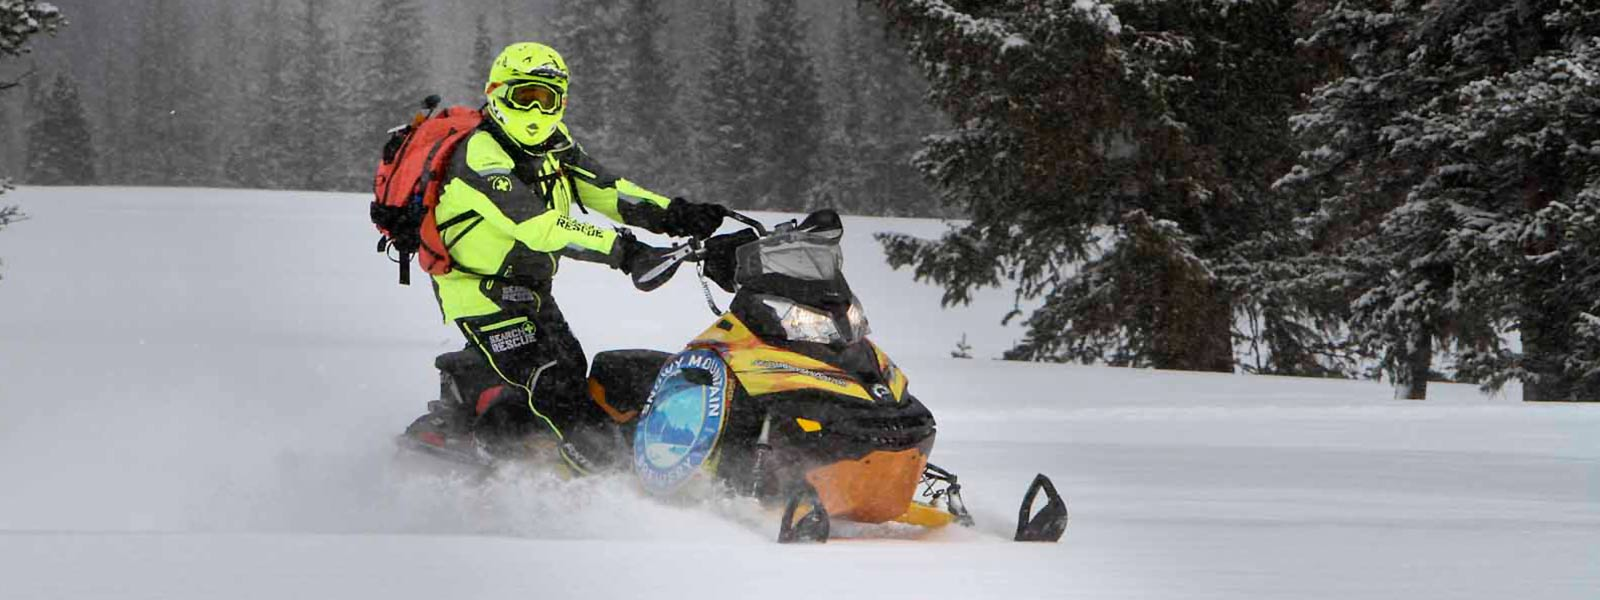 Snowmobiling at Saratoga Resort and Spa